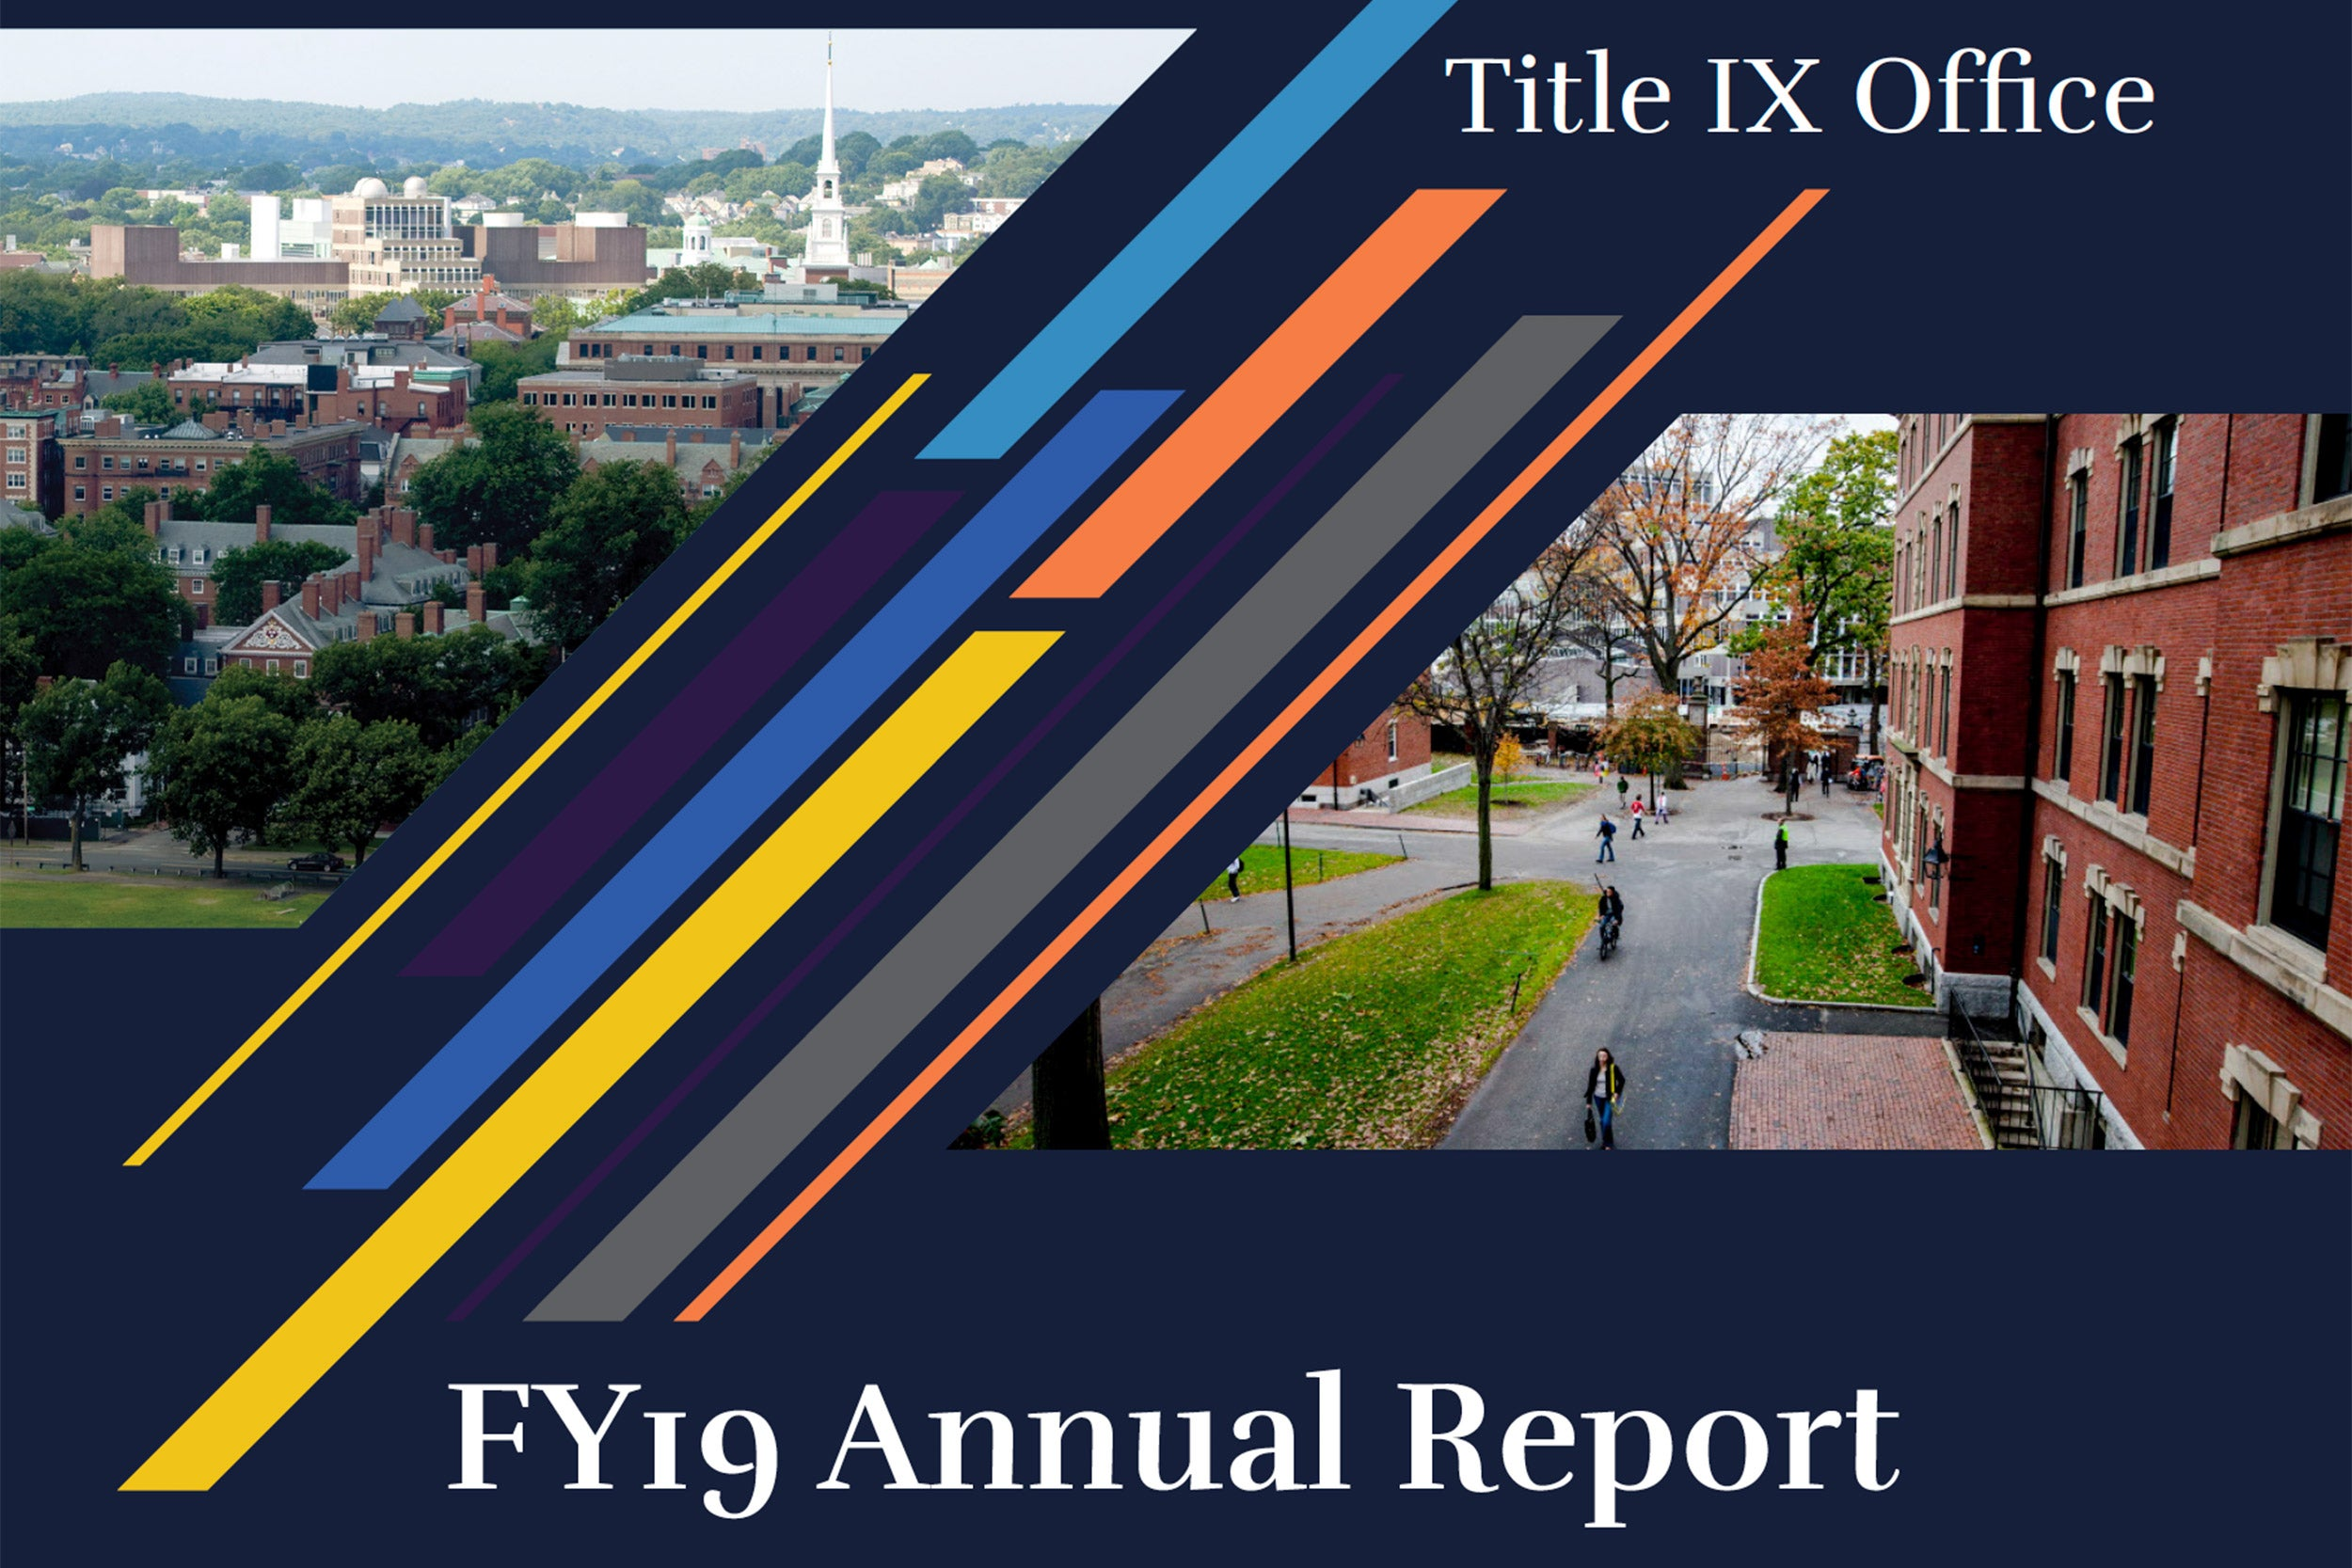 Annual report on Title IX shows goals met, but work will continue